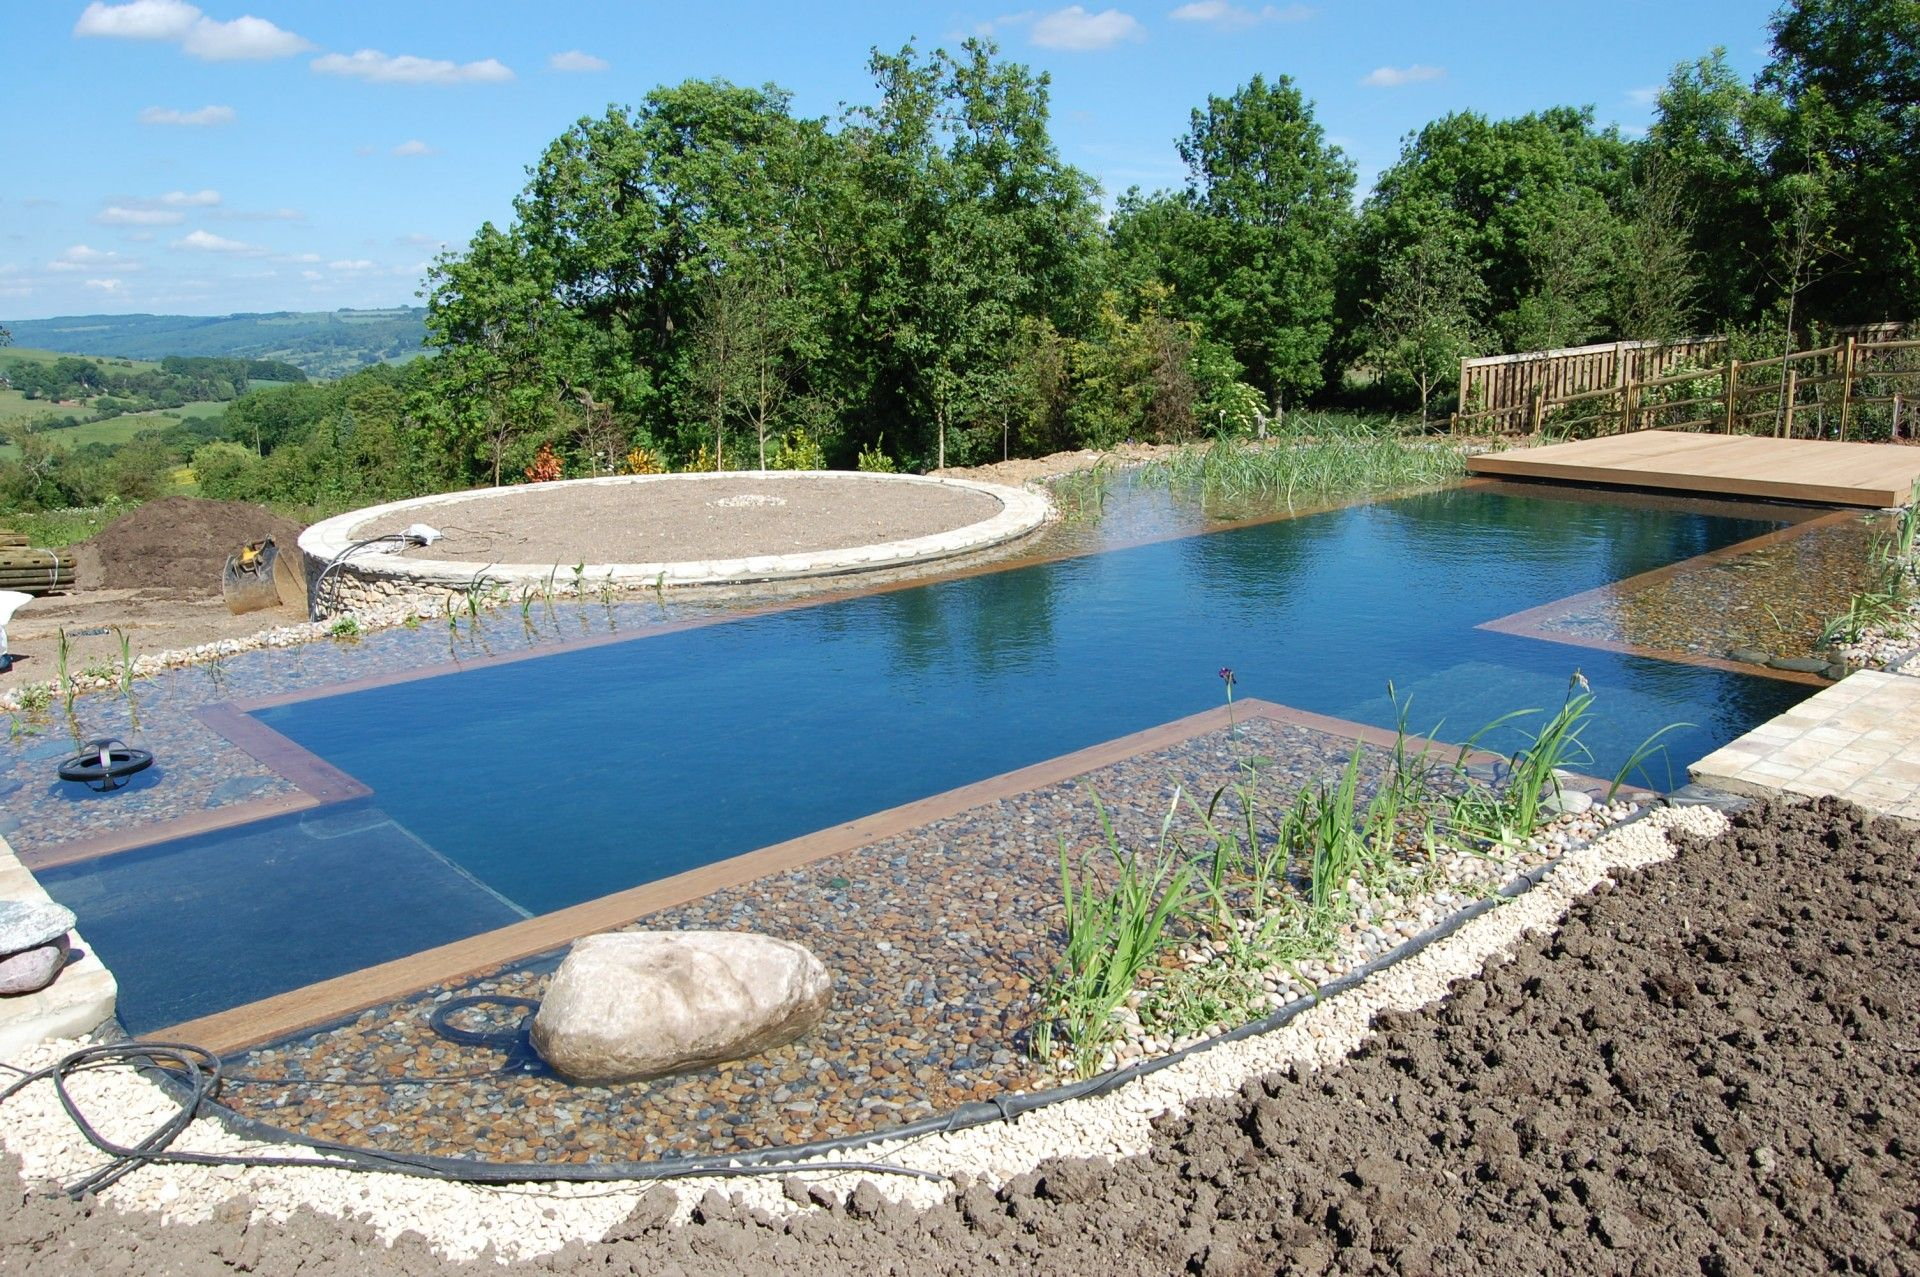 Building a natural swimming pool - 17 Best Images About Natural Swimming Ponds On Pinterest Natural Swimming Pools Leaves And Pools